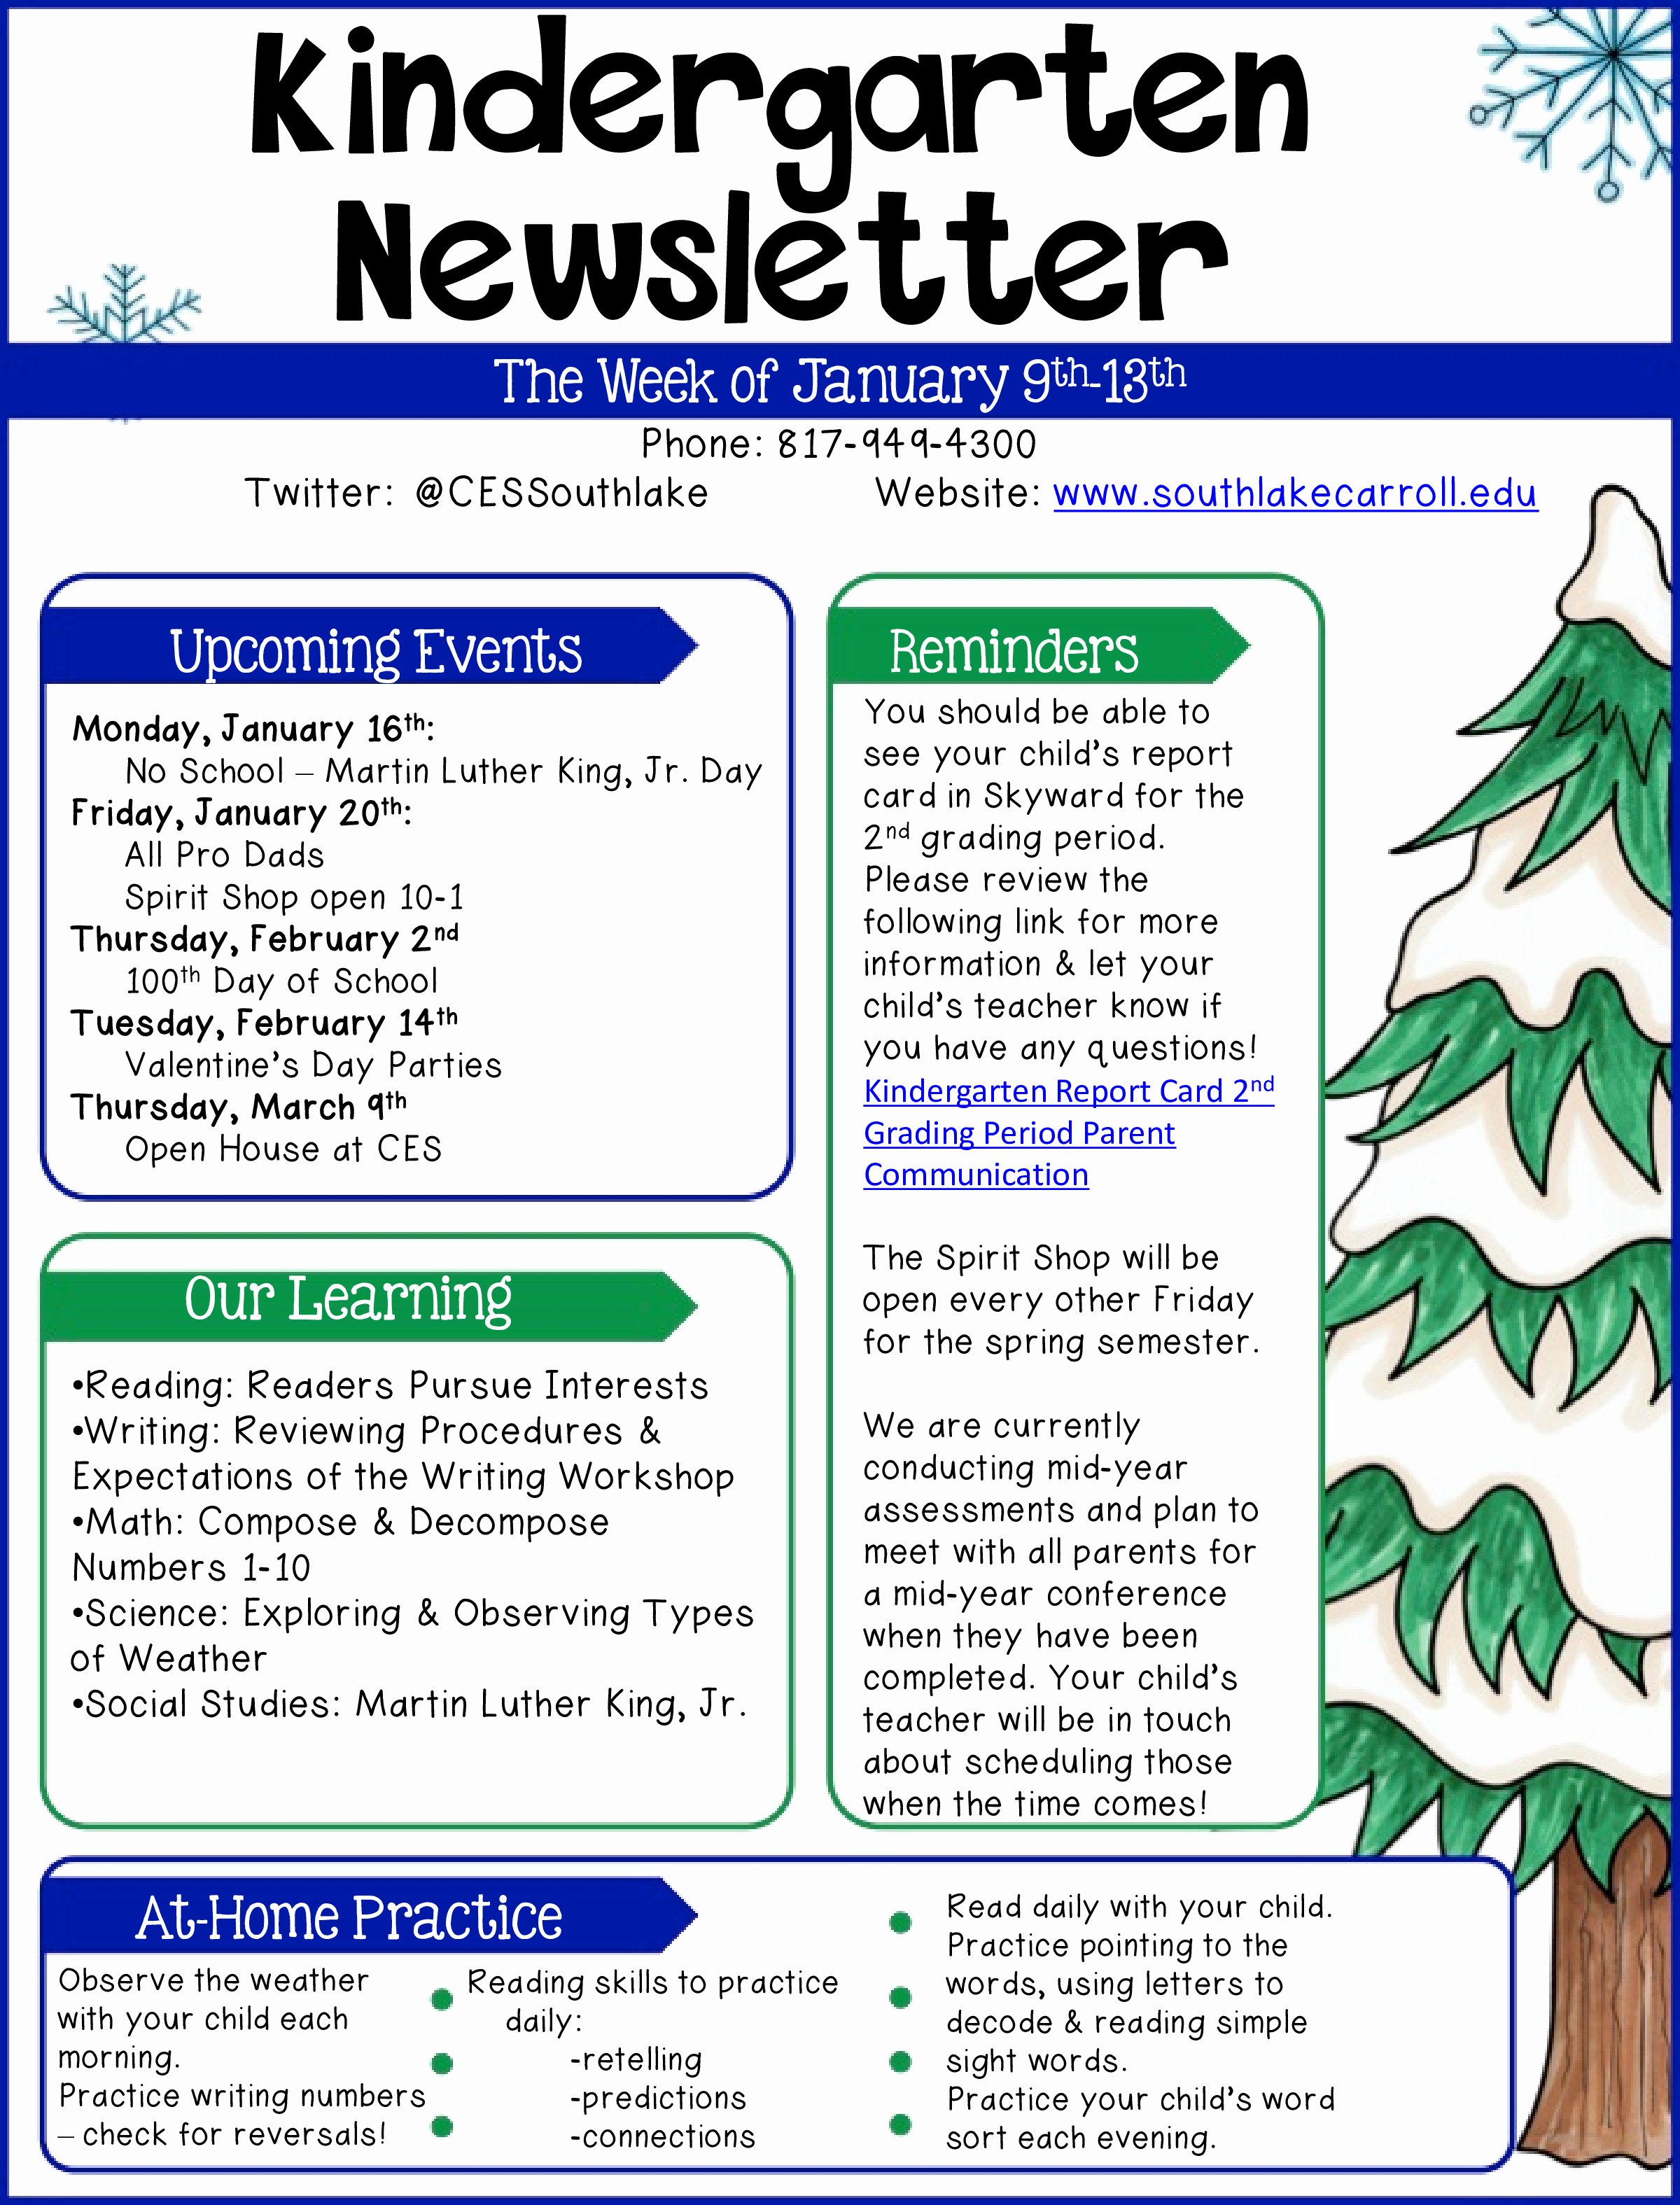 Free Preschool Newsletter Templates Fresh Kindergarten Newsletter Example